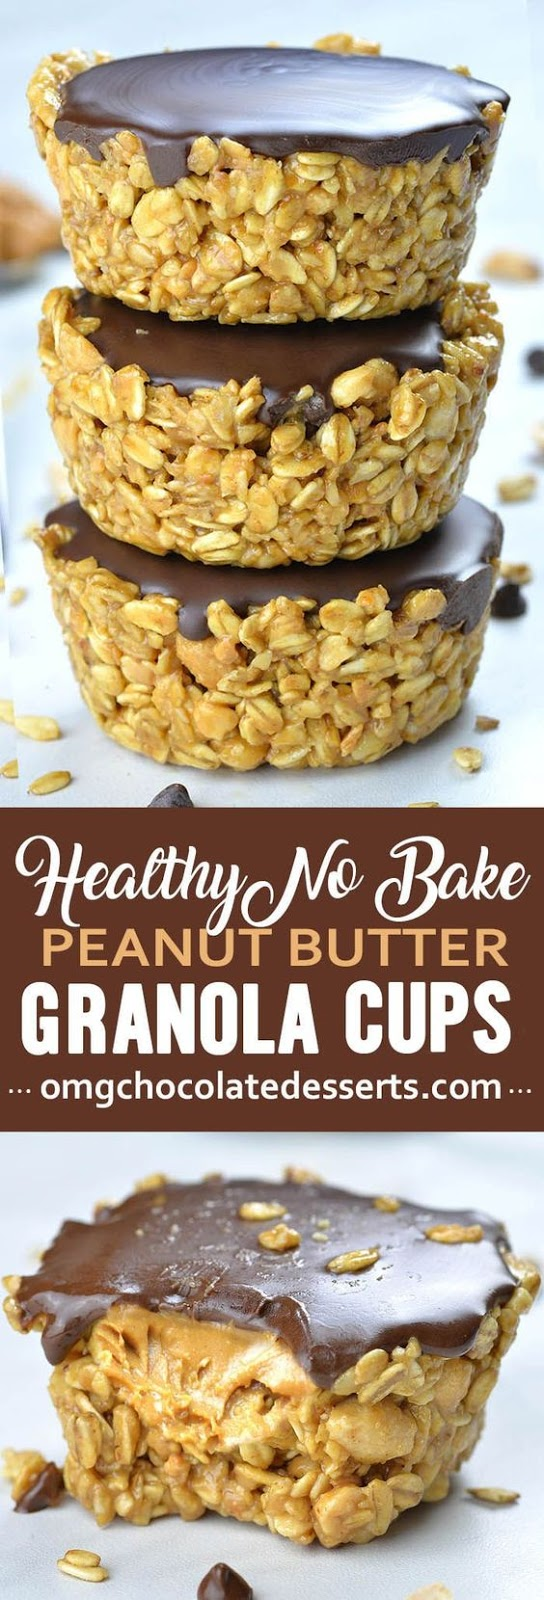 No Bake Peanut Butter Granola Cups #recipes #healthyfoodrecipes #food #foodporn #healthy #yummy #instafood #foodie #delicious #dinner #breakfast #dessert #lunch #vegan #cake #eatclean #homemade #diet #healthyfood #cleaneating #foodstagram